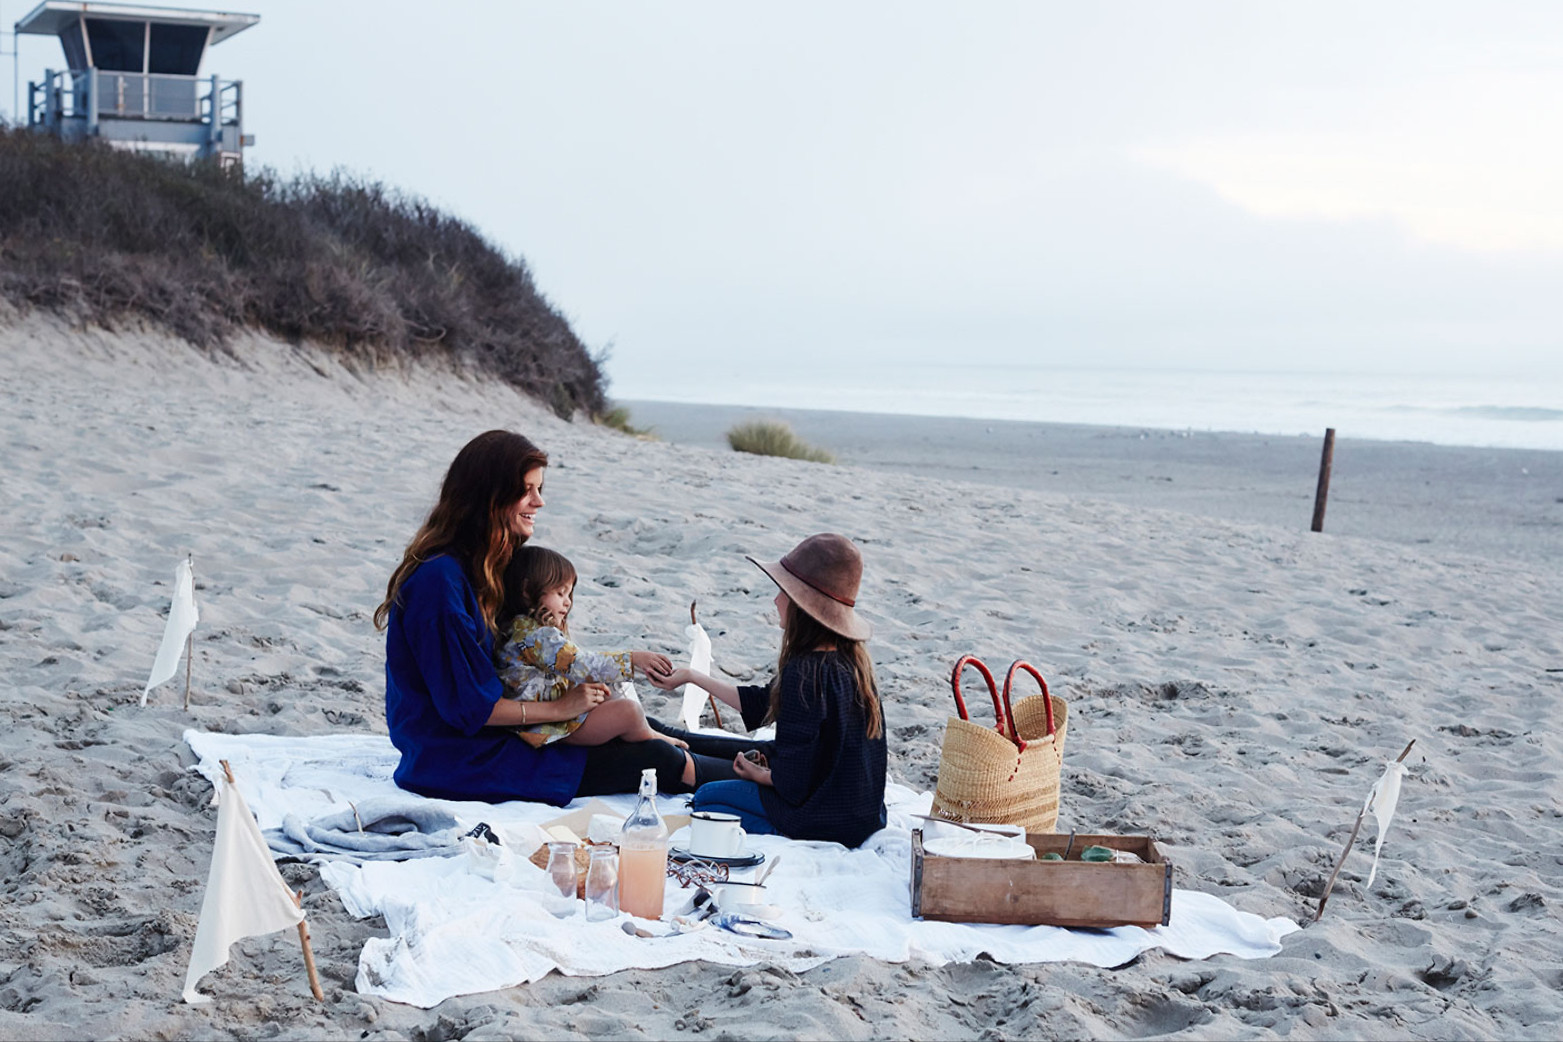 Kendra Smoot with her daughters, Imogen and Stella, on Stinson Beach in Marin County, California.